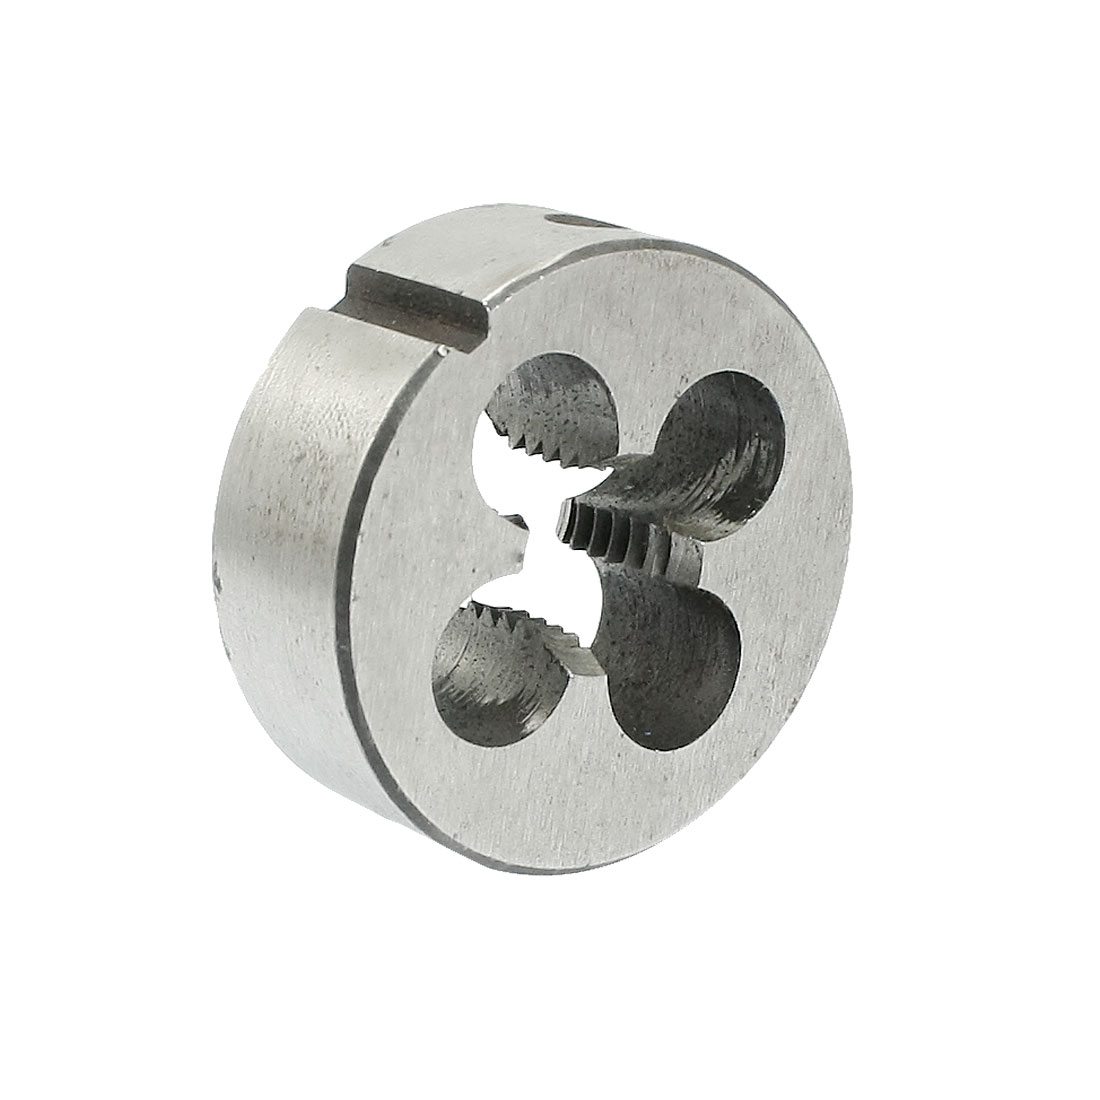 Steel 38mm Outside Dia M12 Round Thread Die Hand Tool